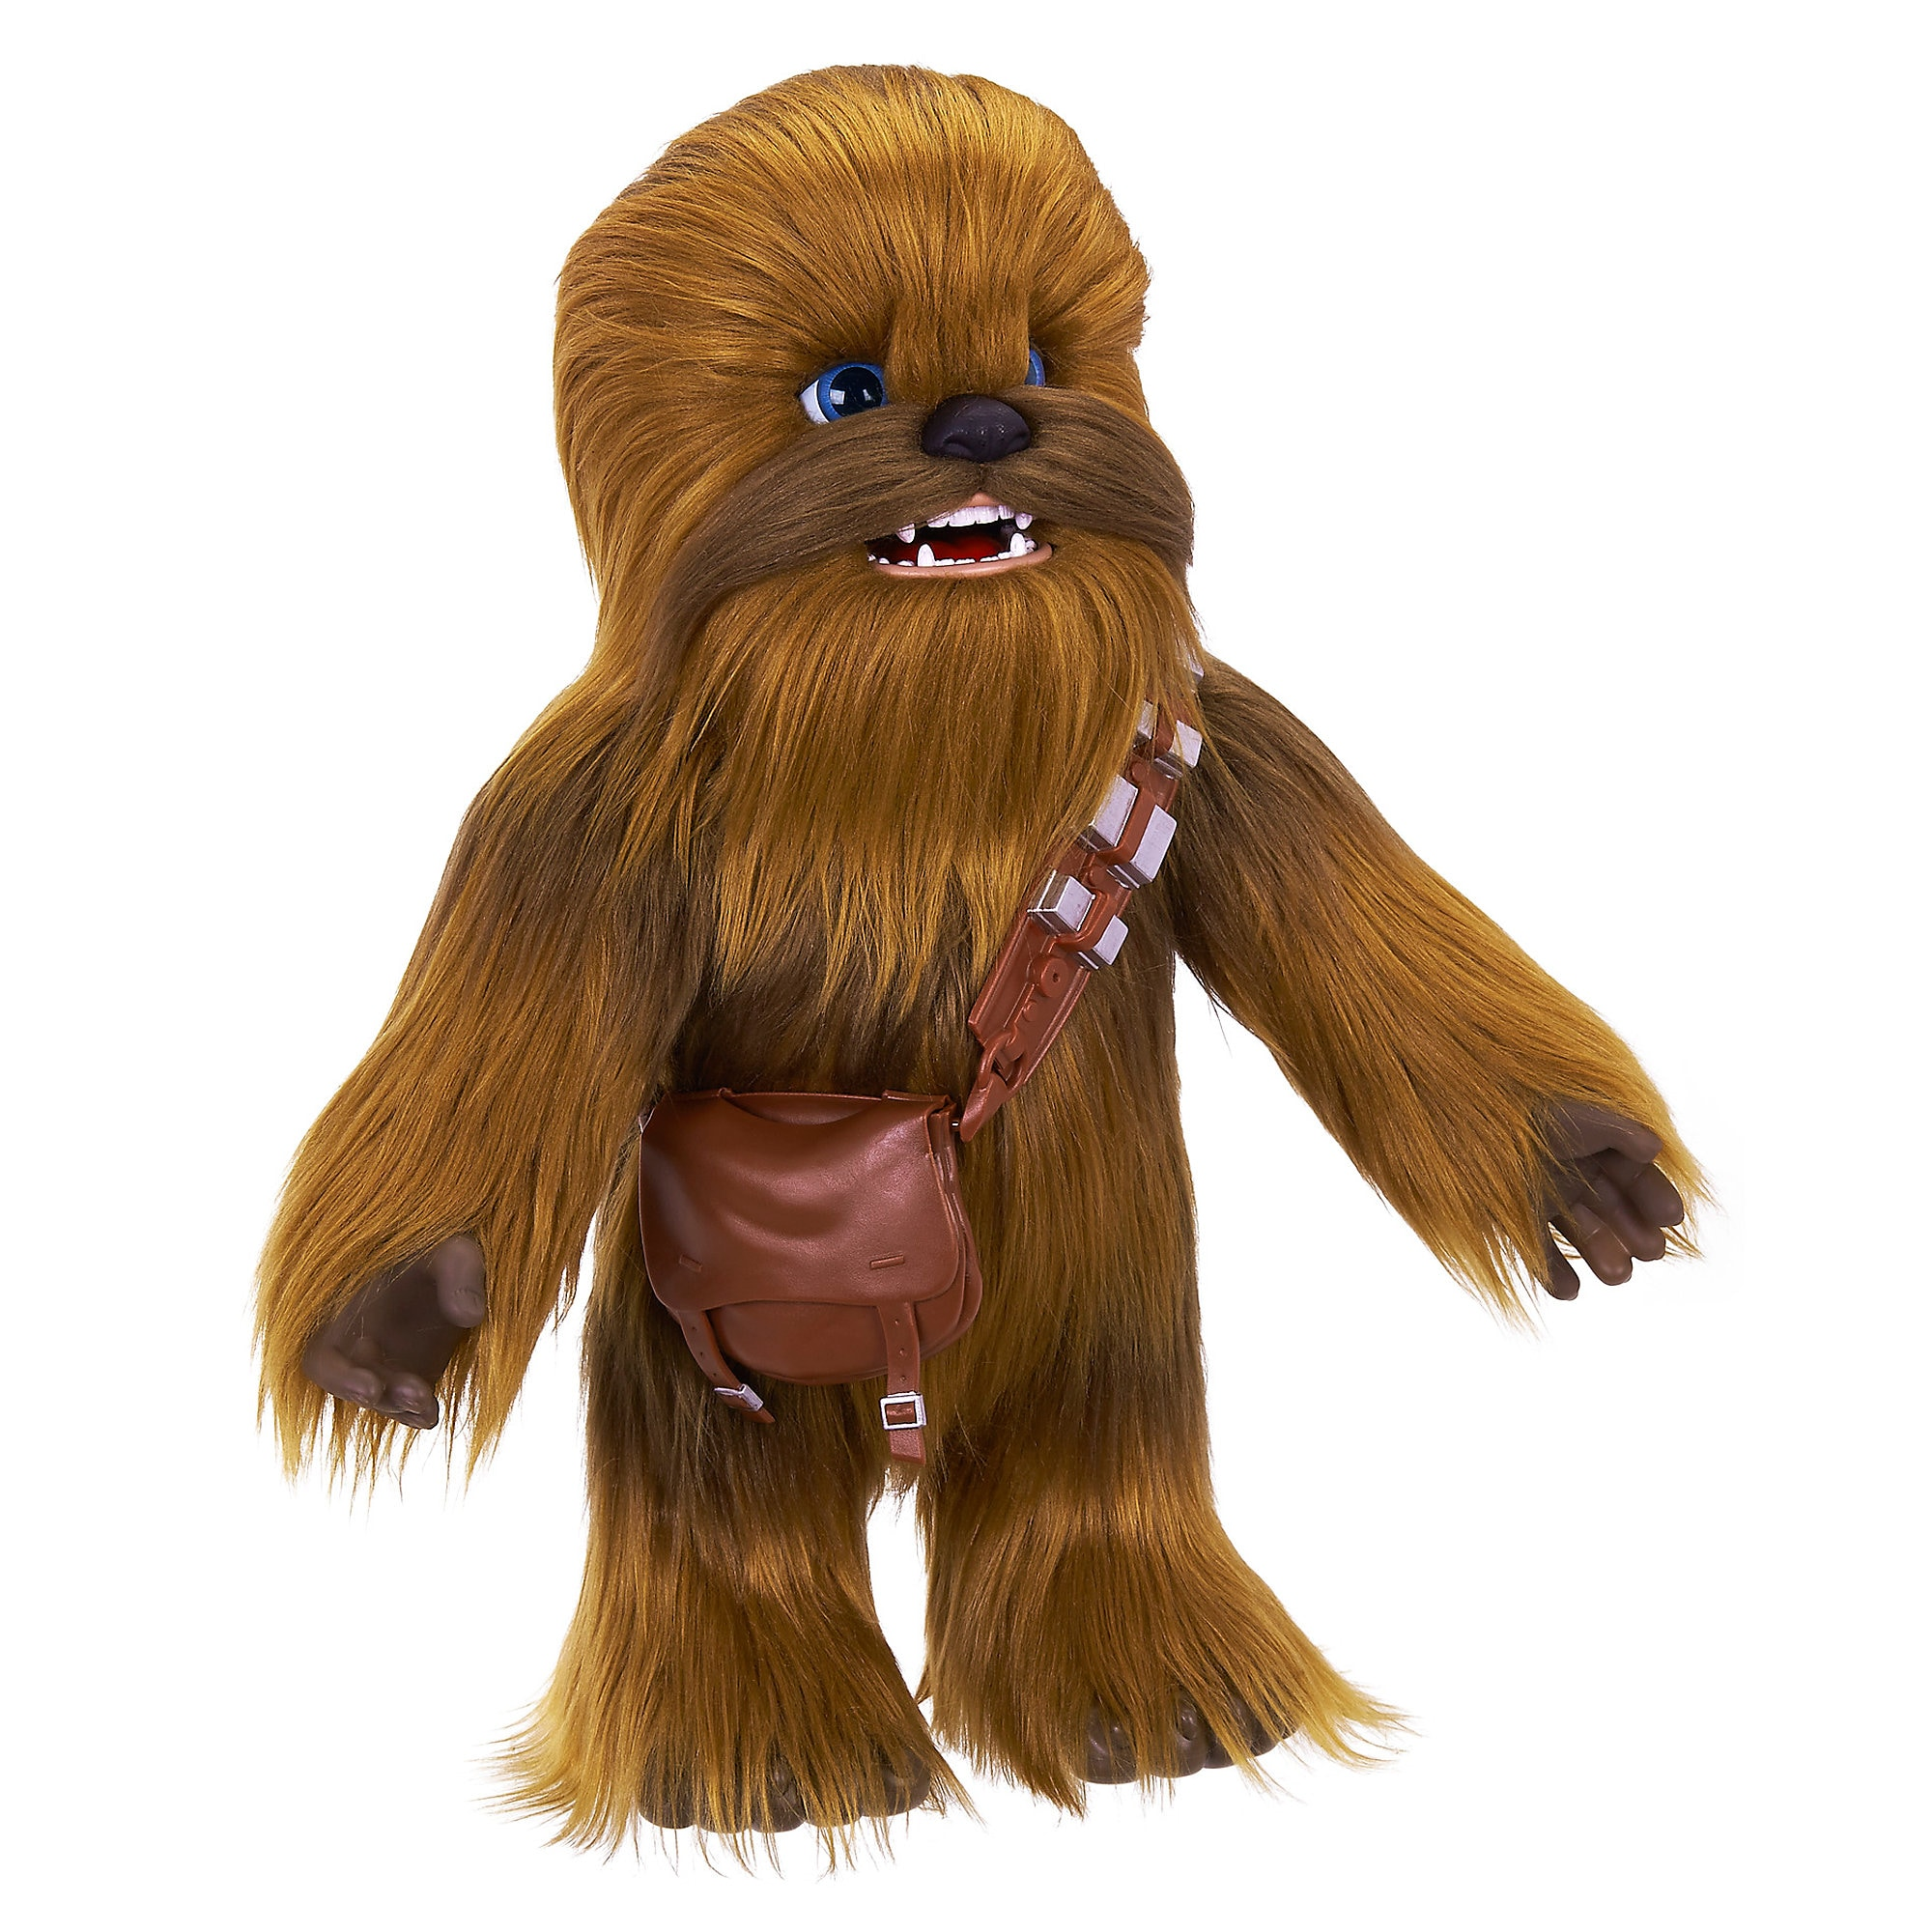 chewbacca interactive toy by hasbro star wars shopdisney